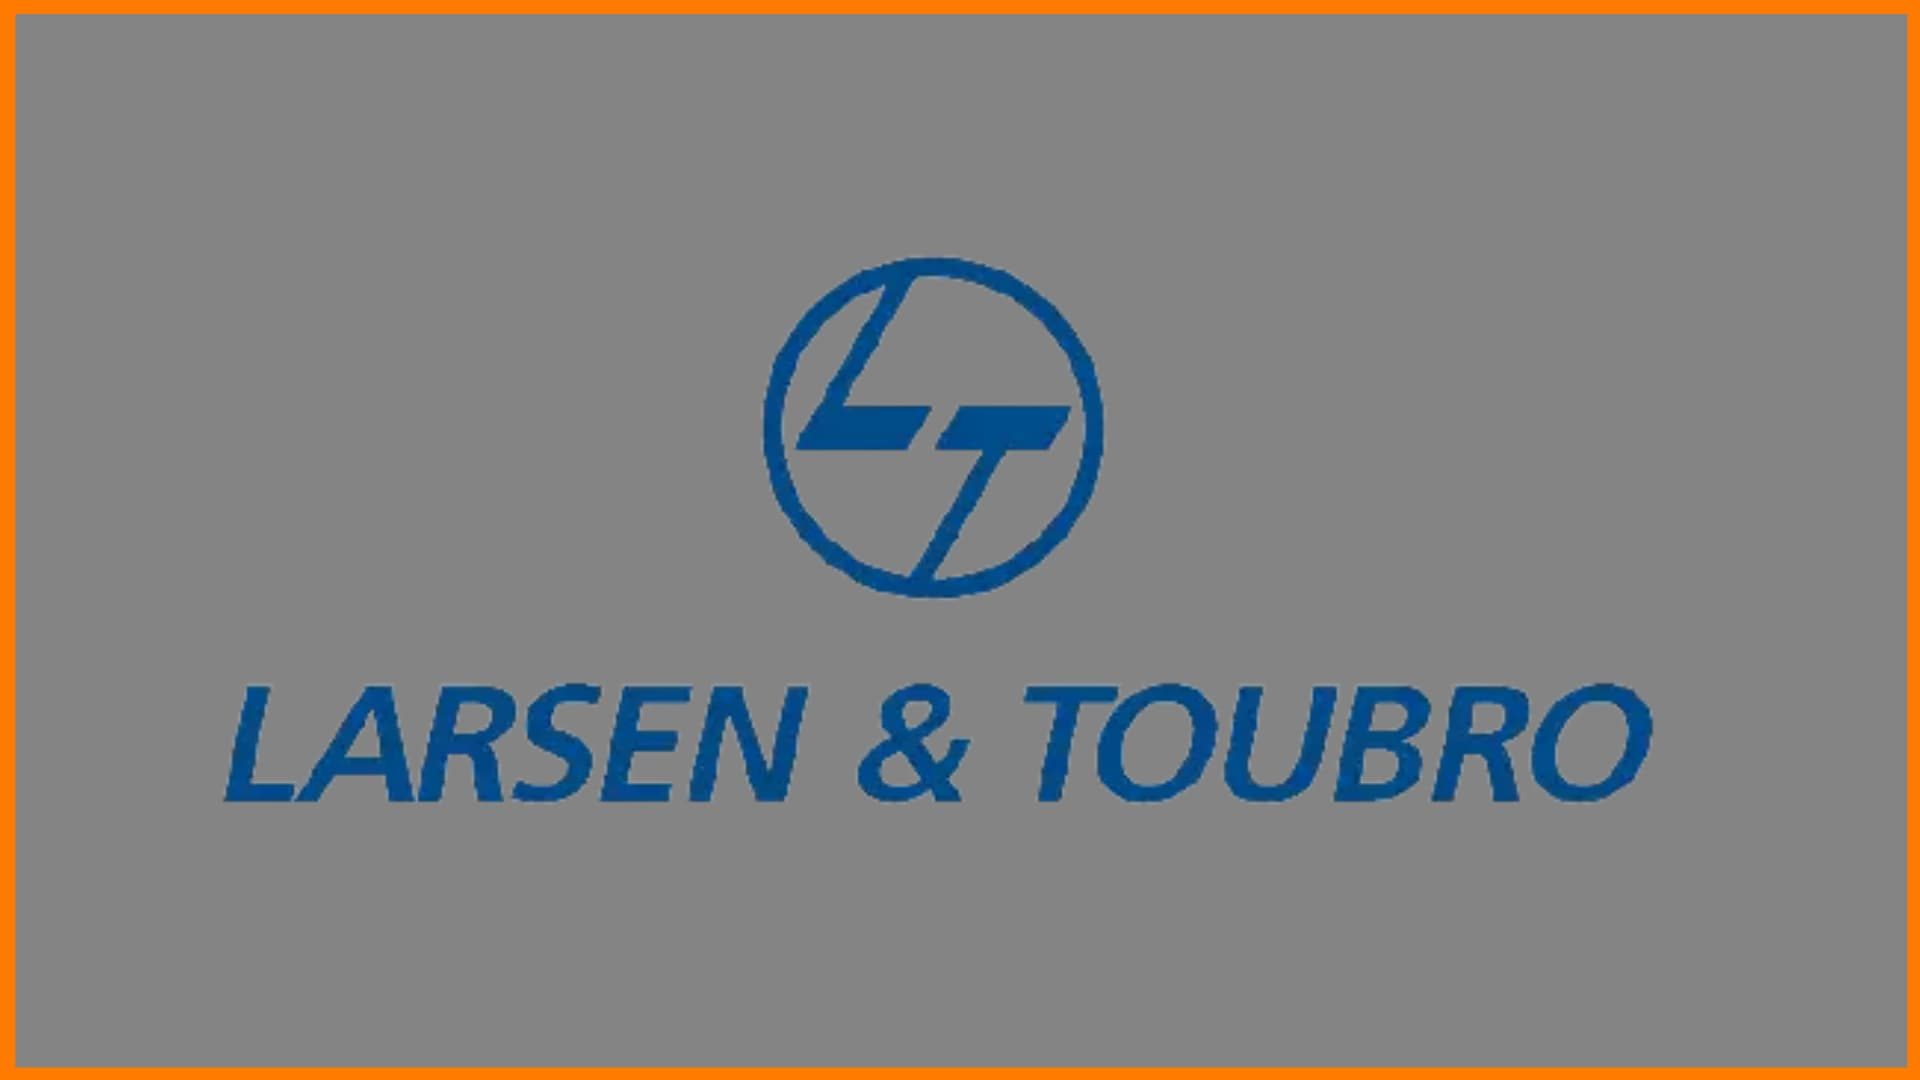 Larsen & Toubro Limited—An Indian Conglomerate